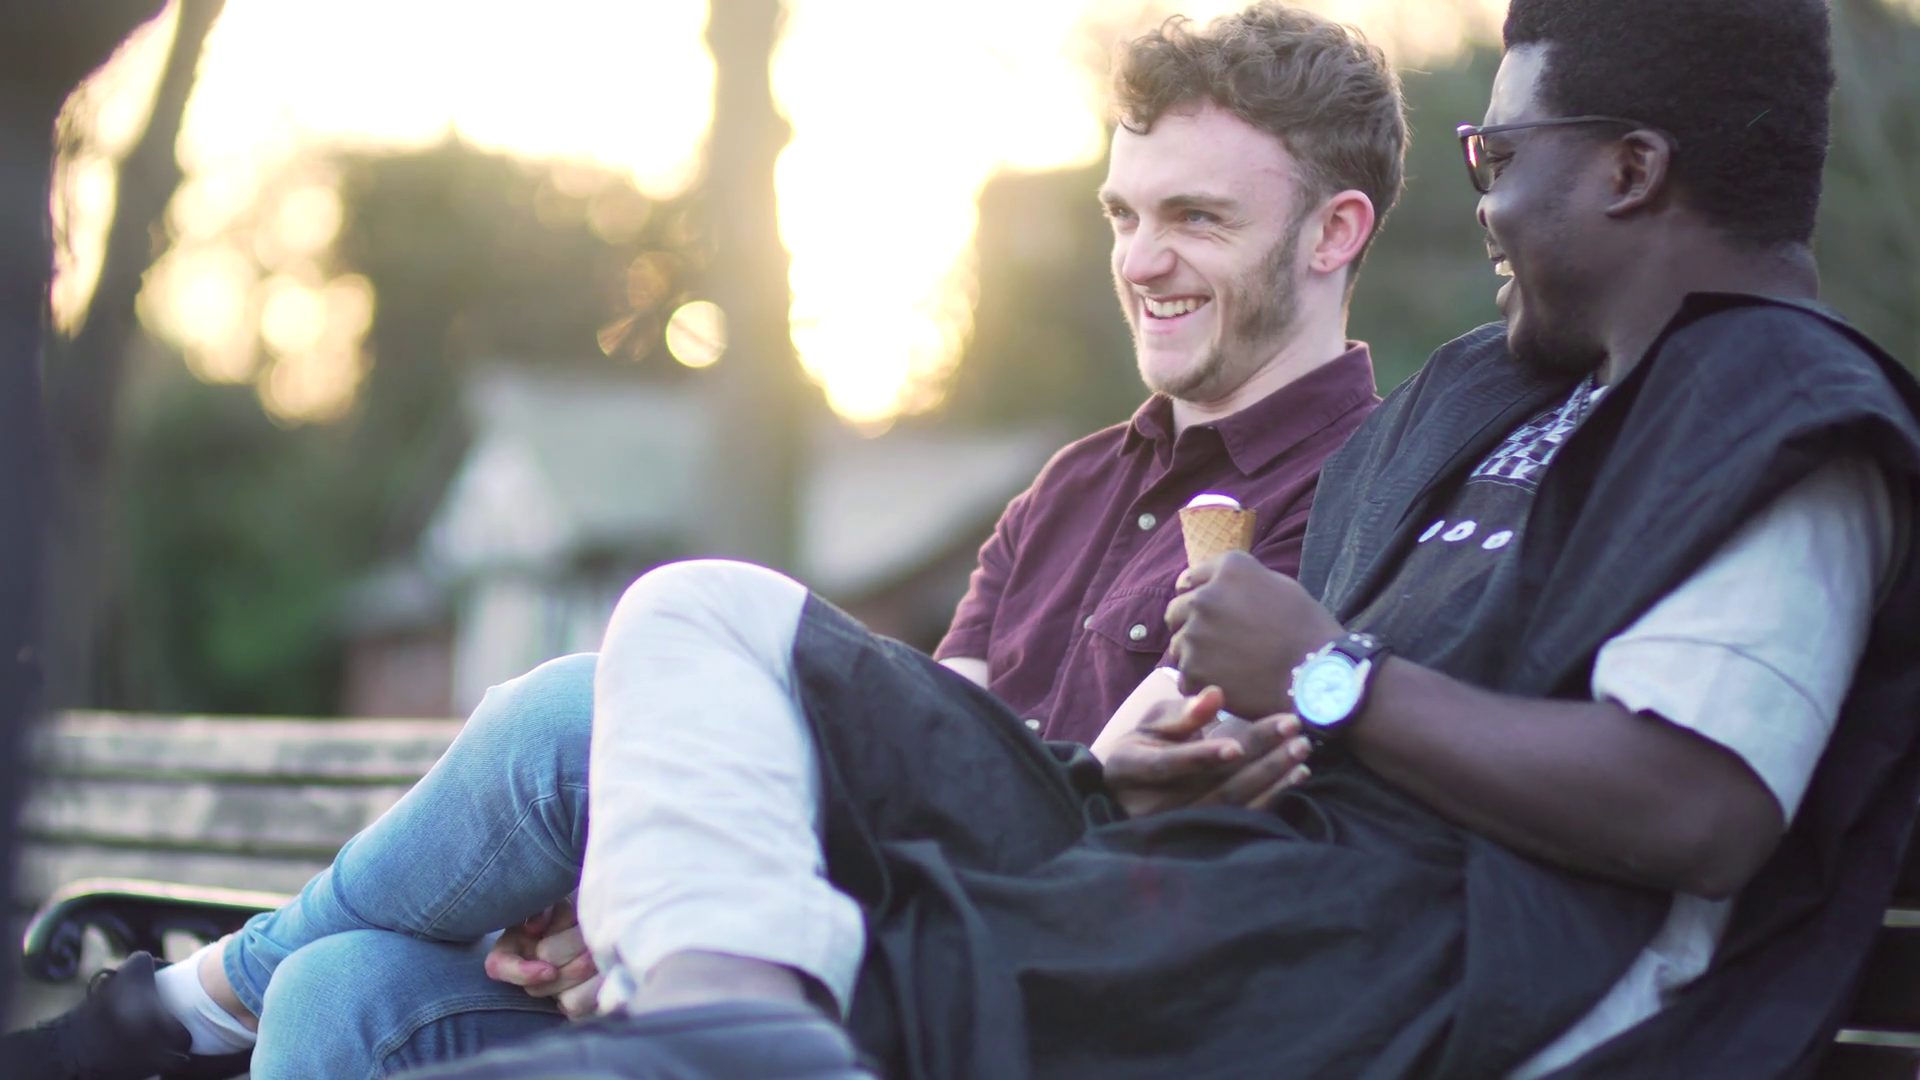 videoblocks-two-men-happy-gay-couple-pair-talking-and-eating-ice-cream-at-sunset-friends-sitting-laughing-and-smiling-young-handsome-males-multi-ethnic-diversity-white-caucasian-and-black-nature-trees-and-romantic-sun_s74vxtwax_thumbnail-full07.png